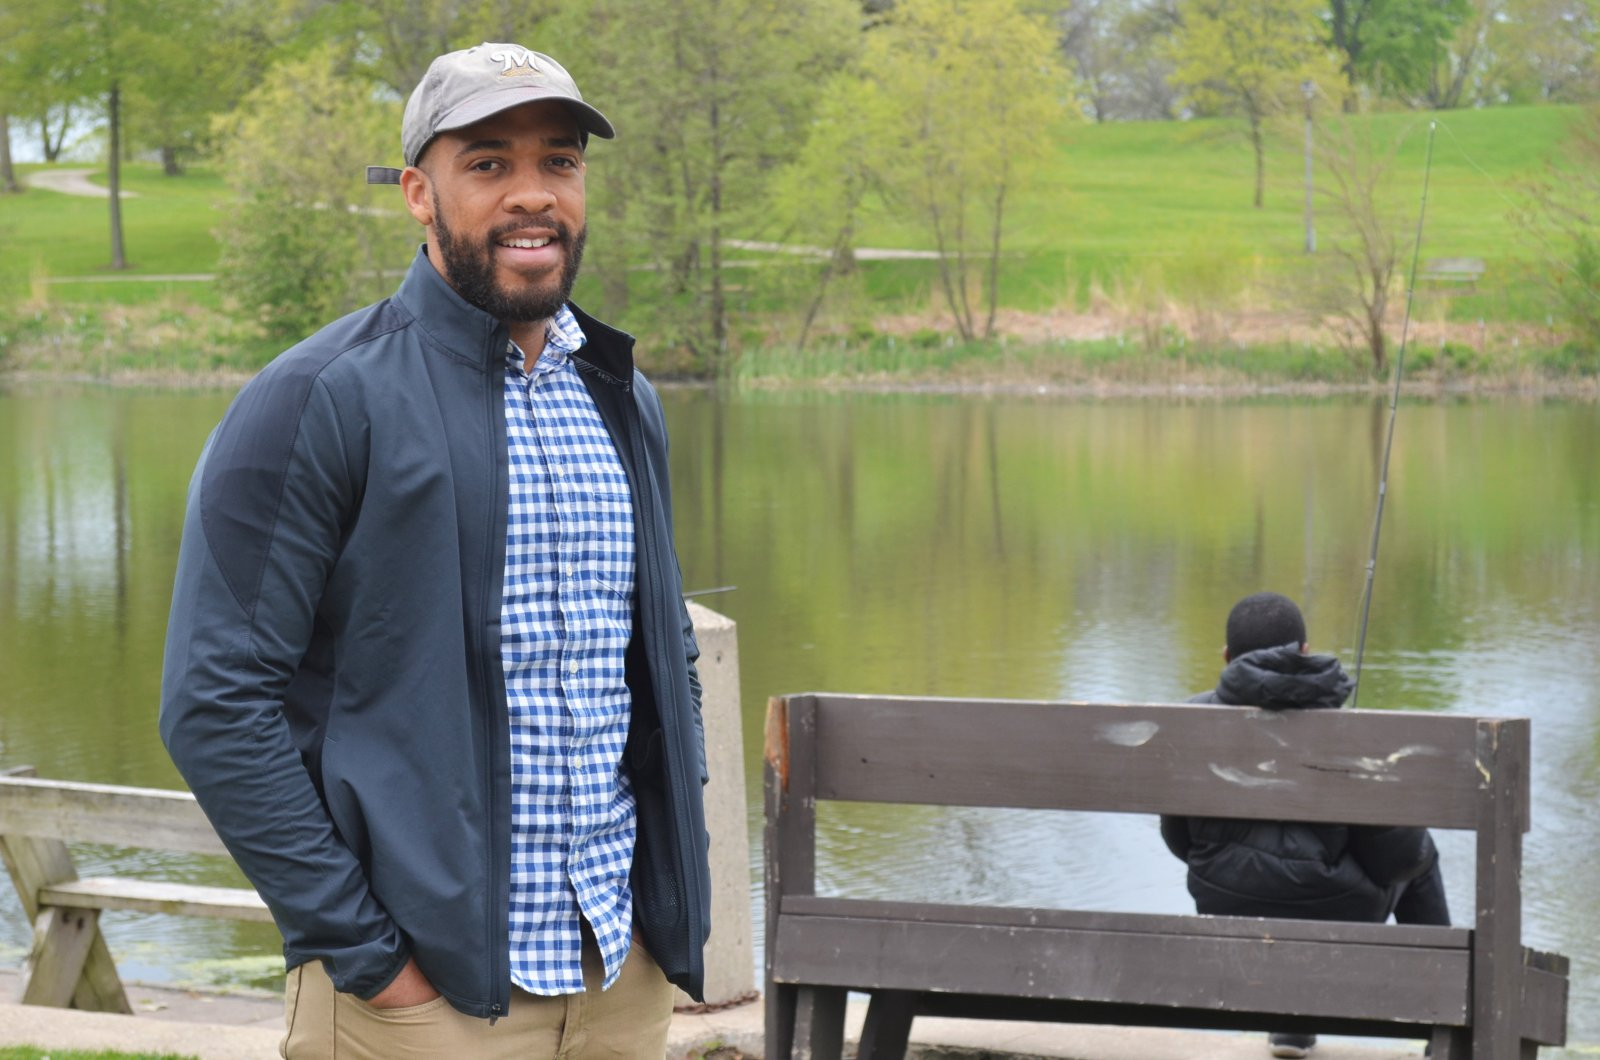 lt-gov-mandela-barnes-at-washington-park-pond